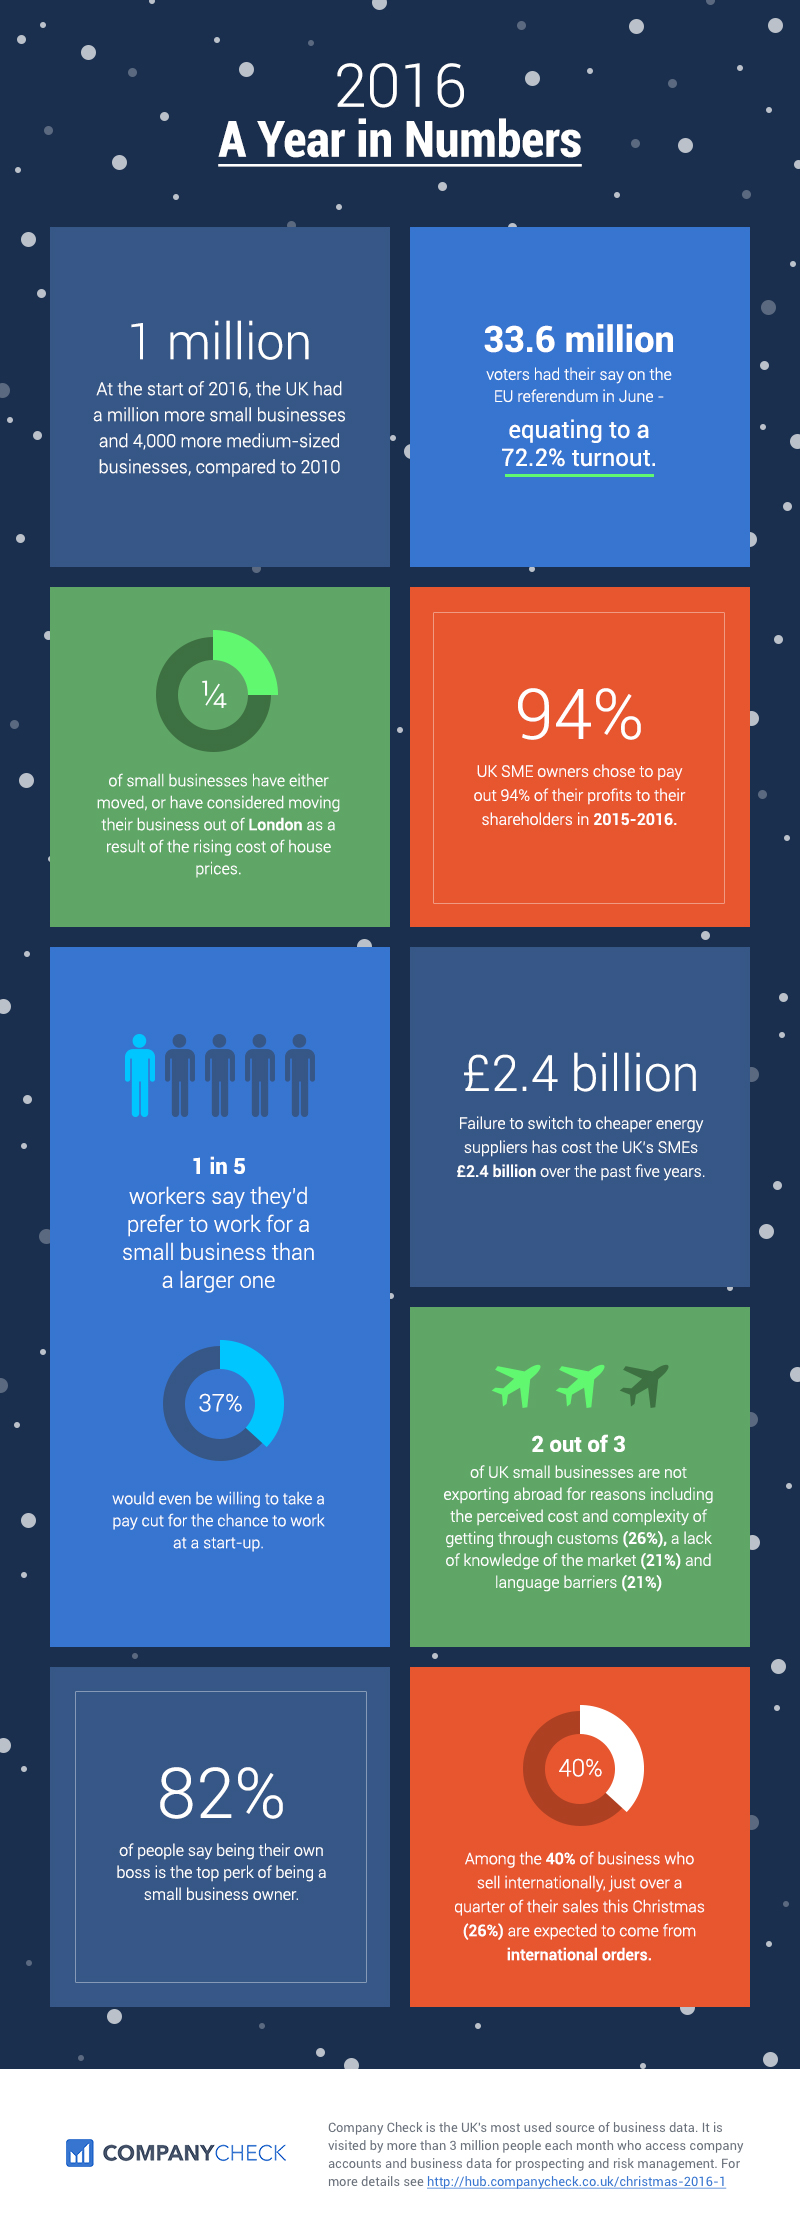 2016 - a year in numbers